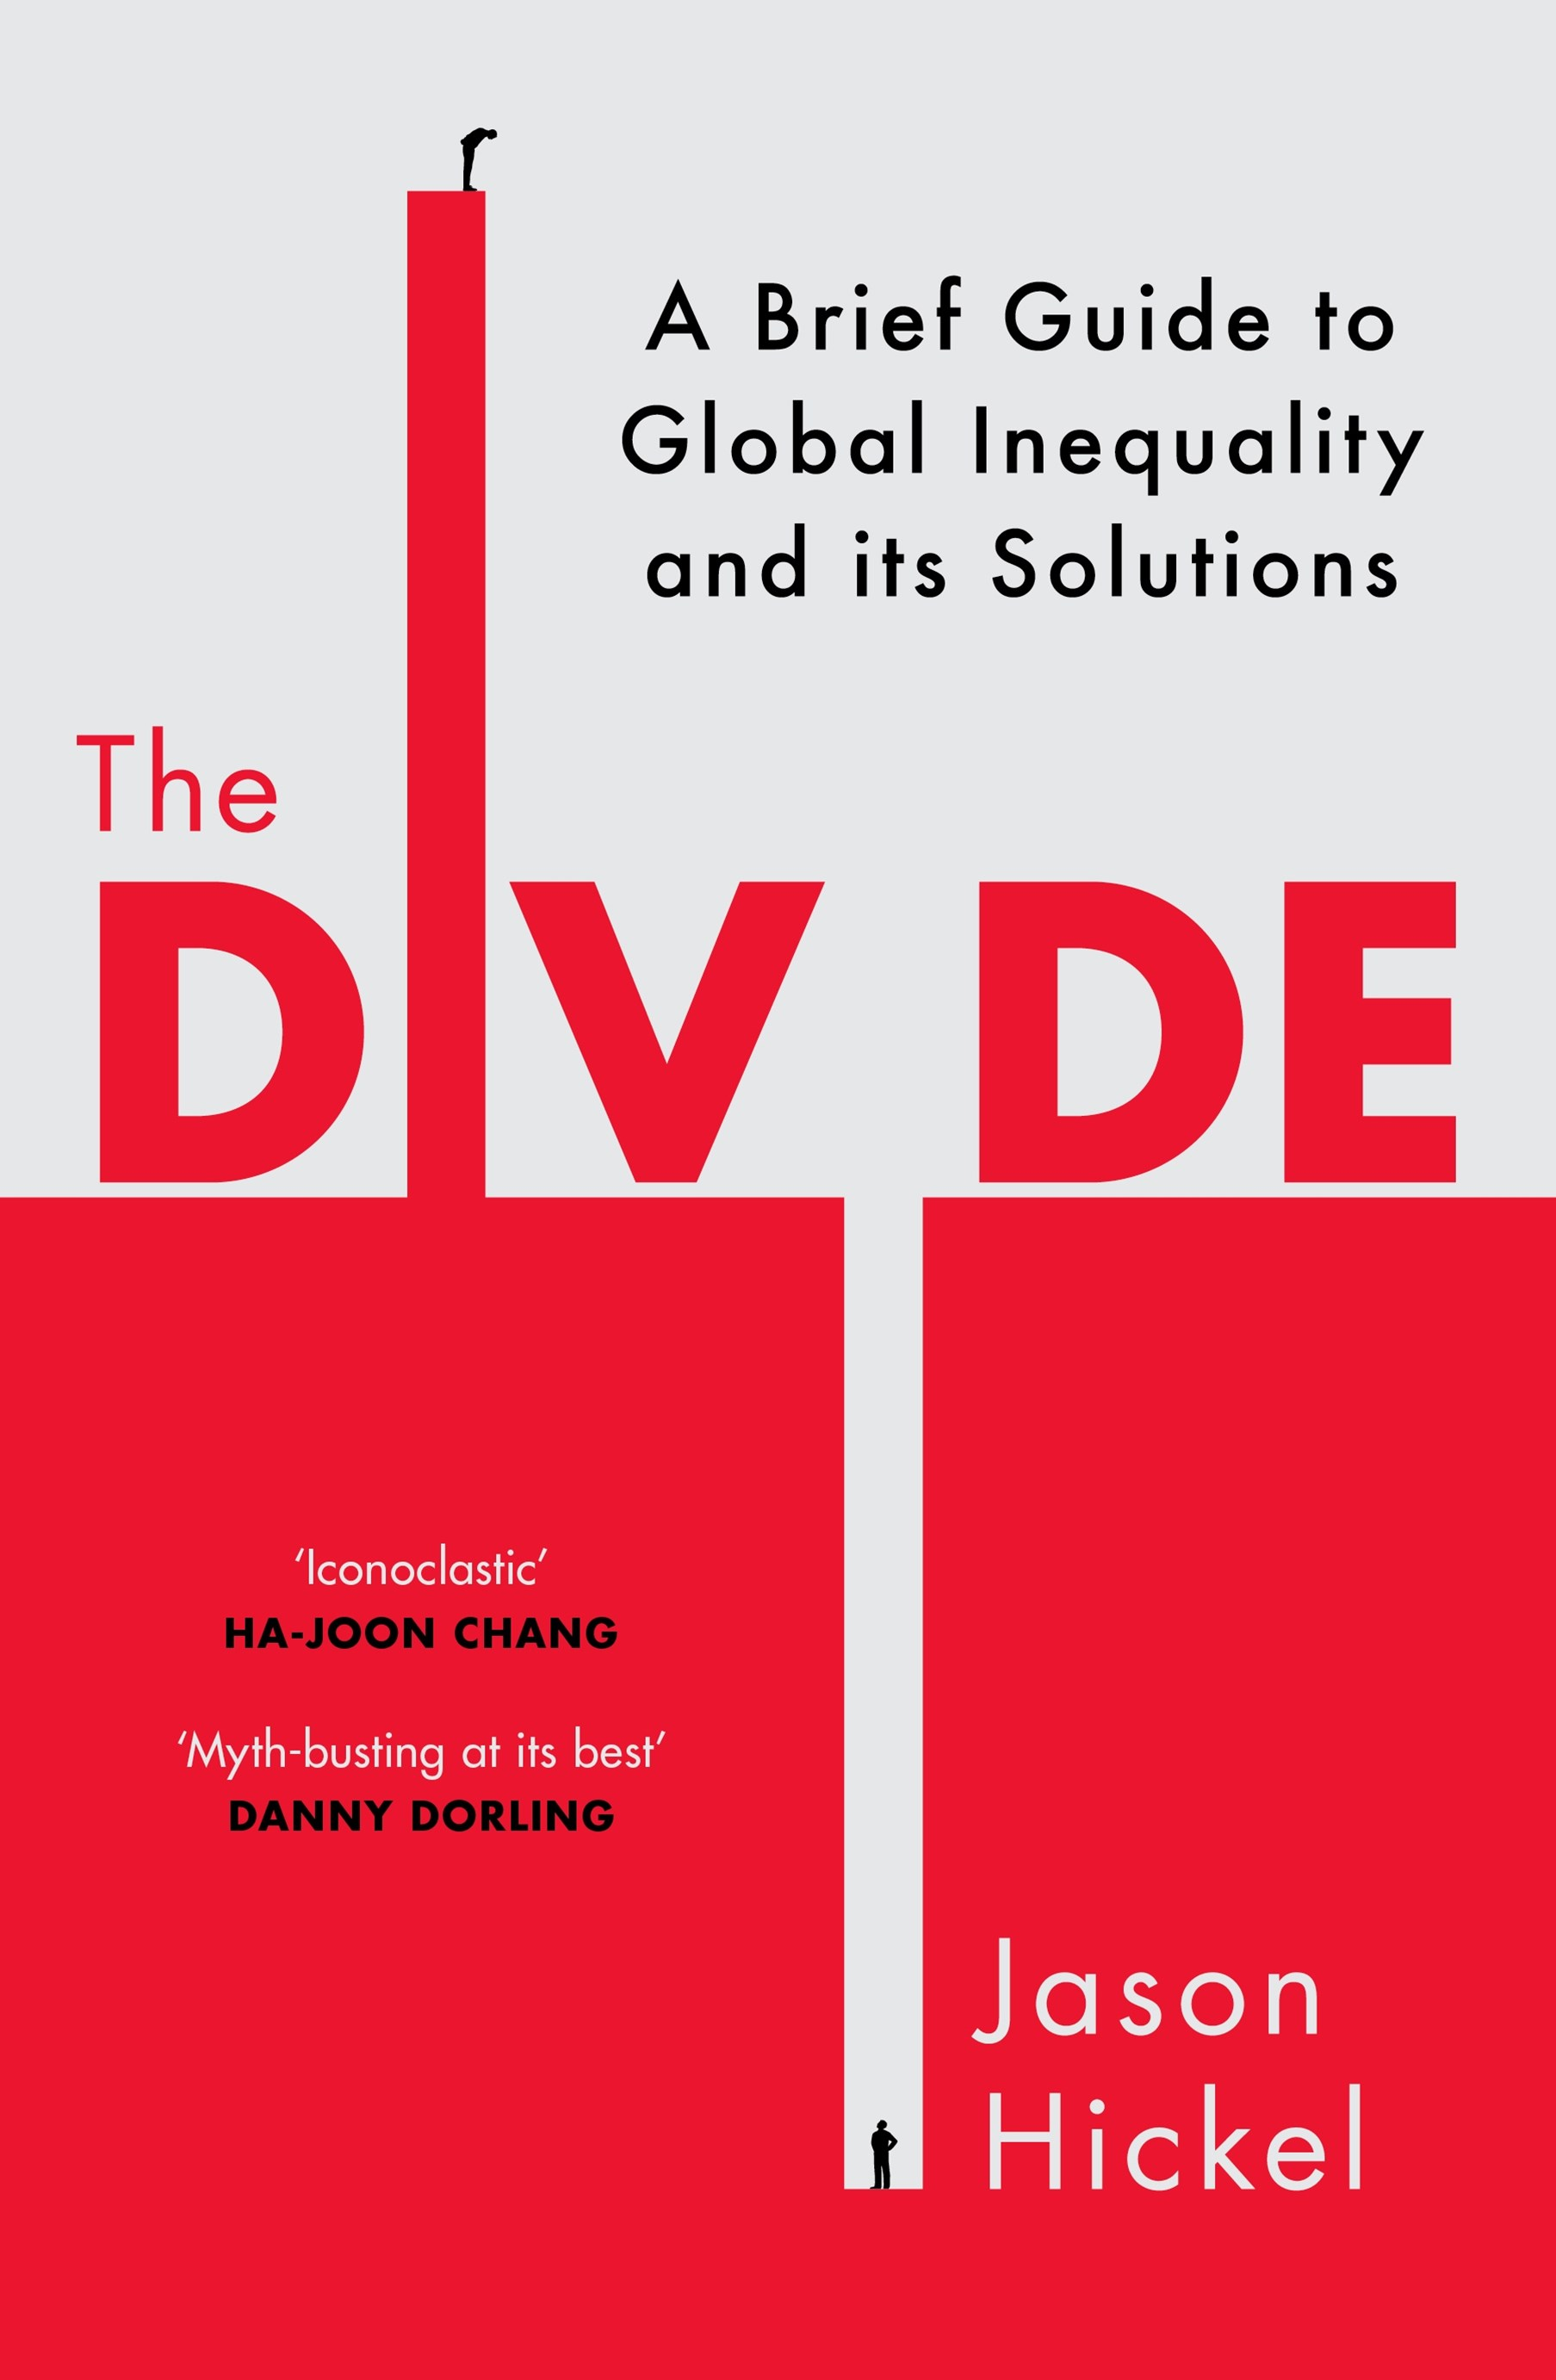 The Divide: A Brief Guide to Global Inequality and its Solutions